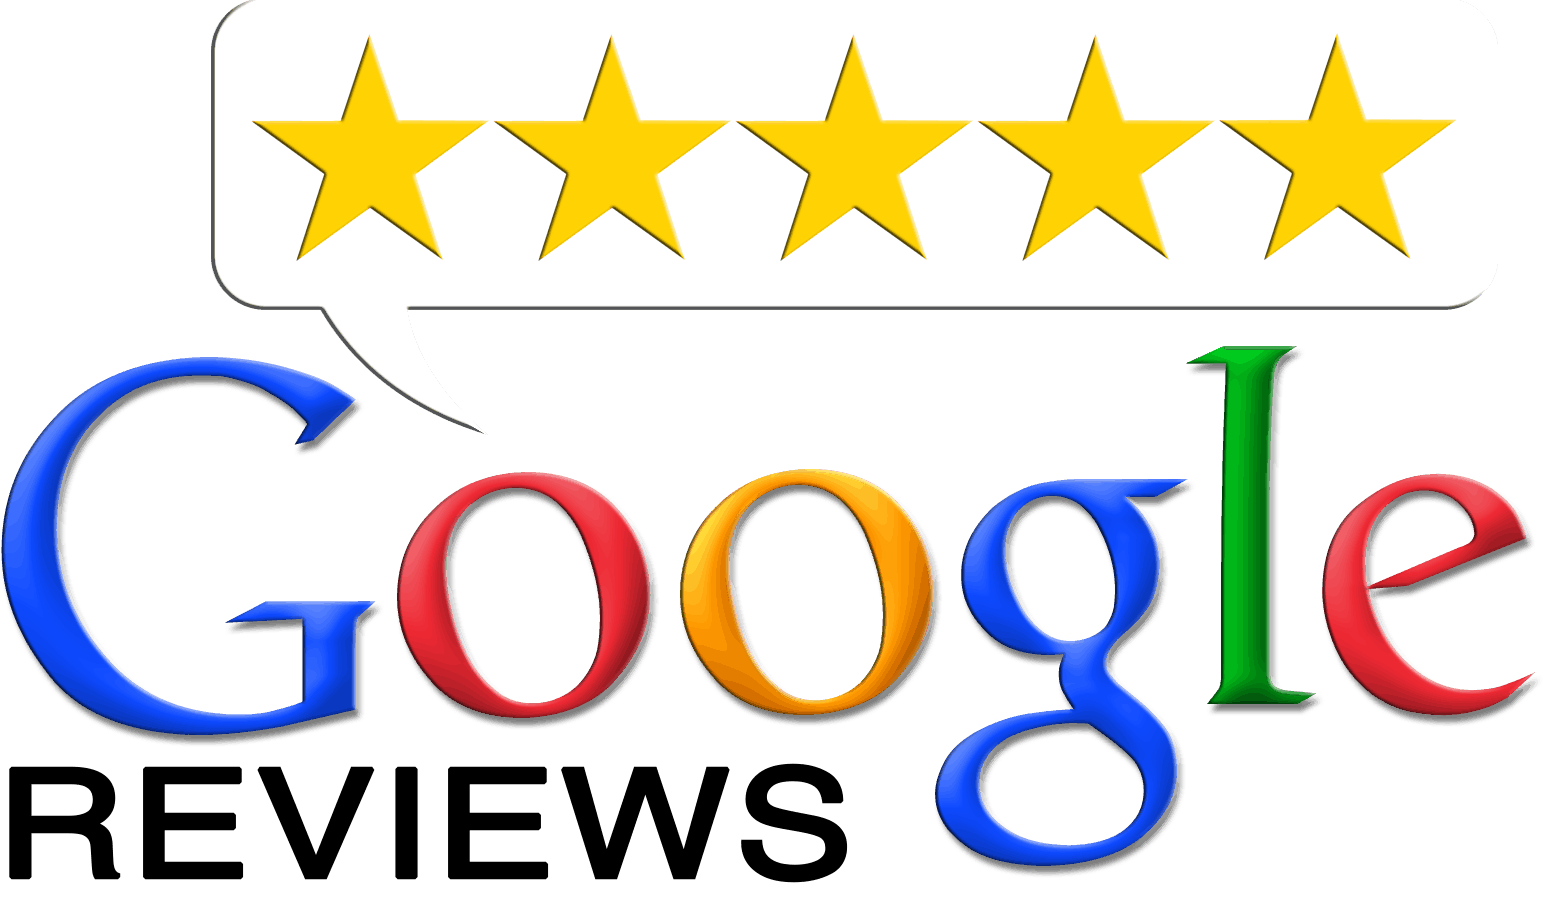 google-5-star-attic-cleaning-attic-insulation removal service